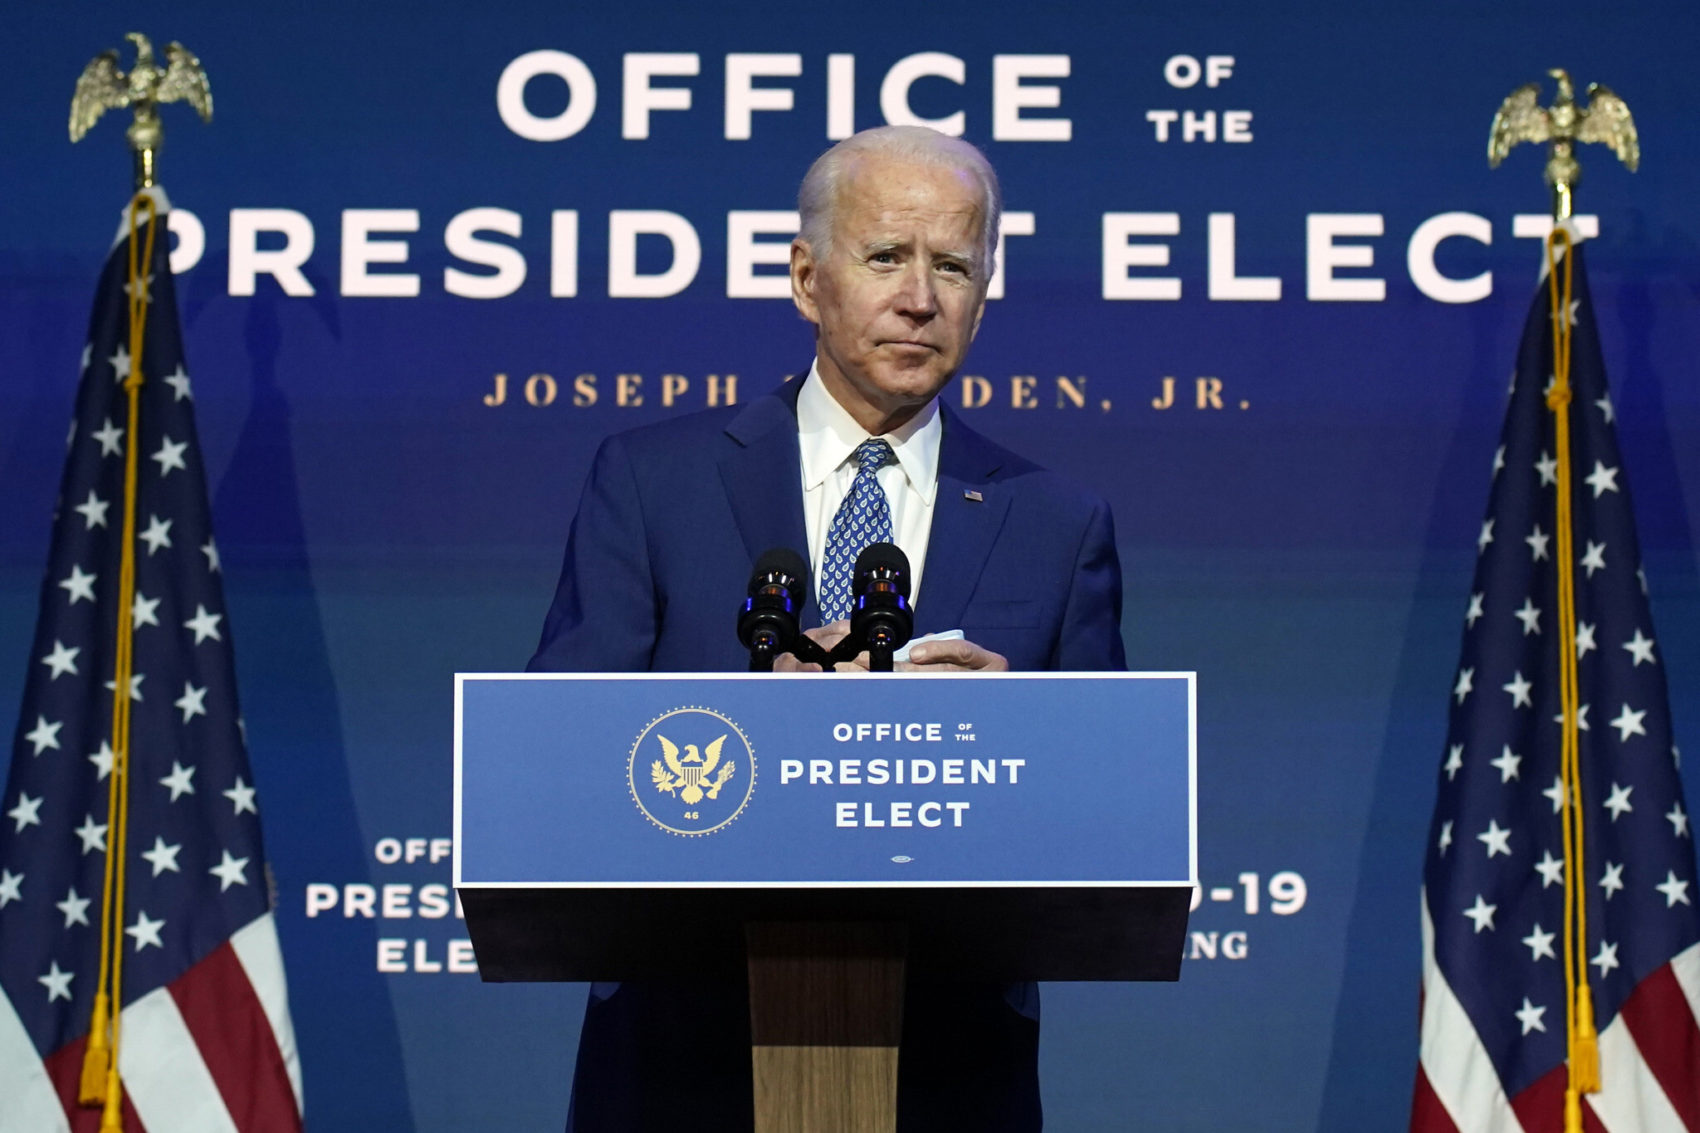 Biden: 'A Mask Remains the Most Potent Weapon Against the Virus'